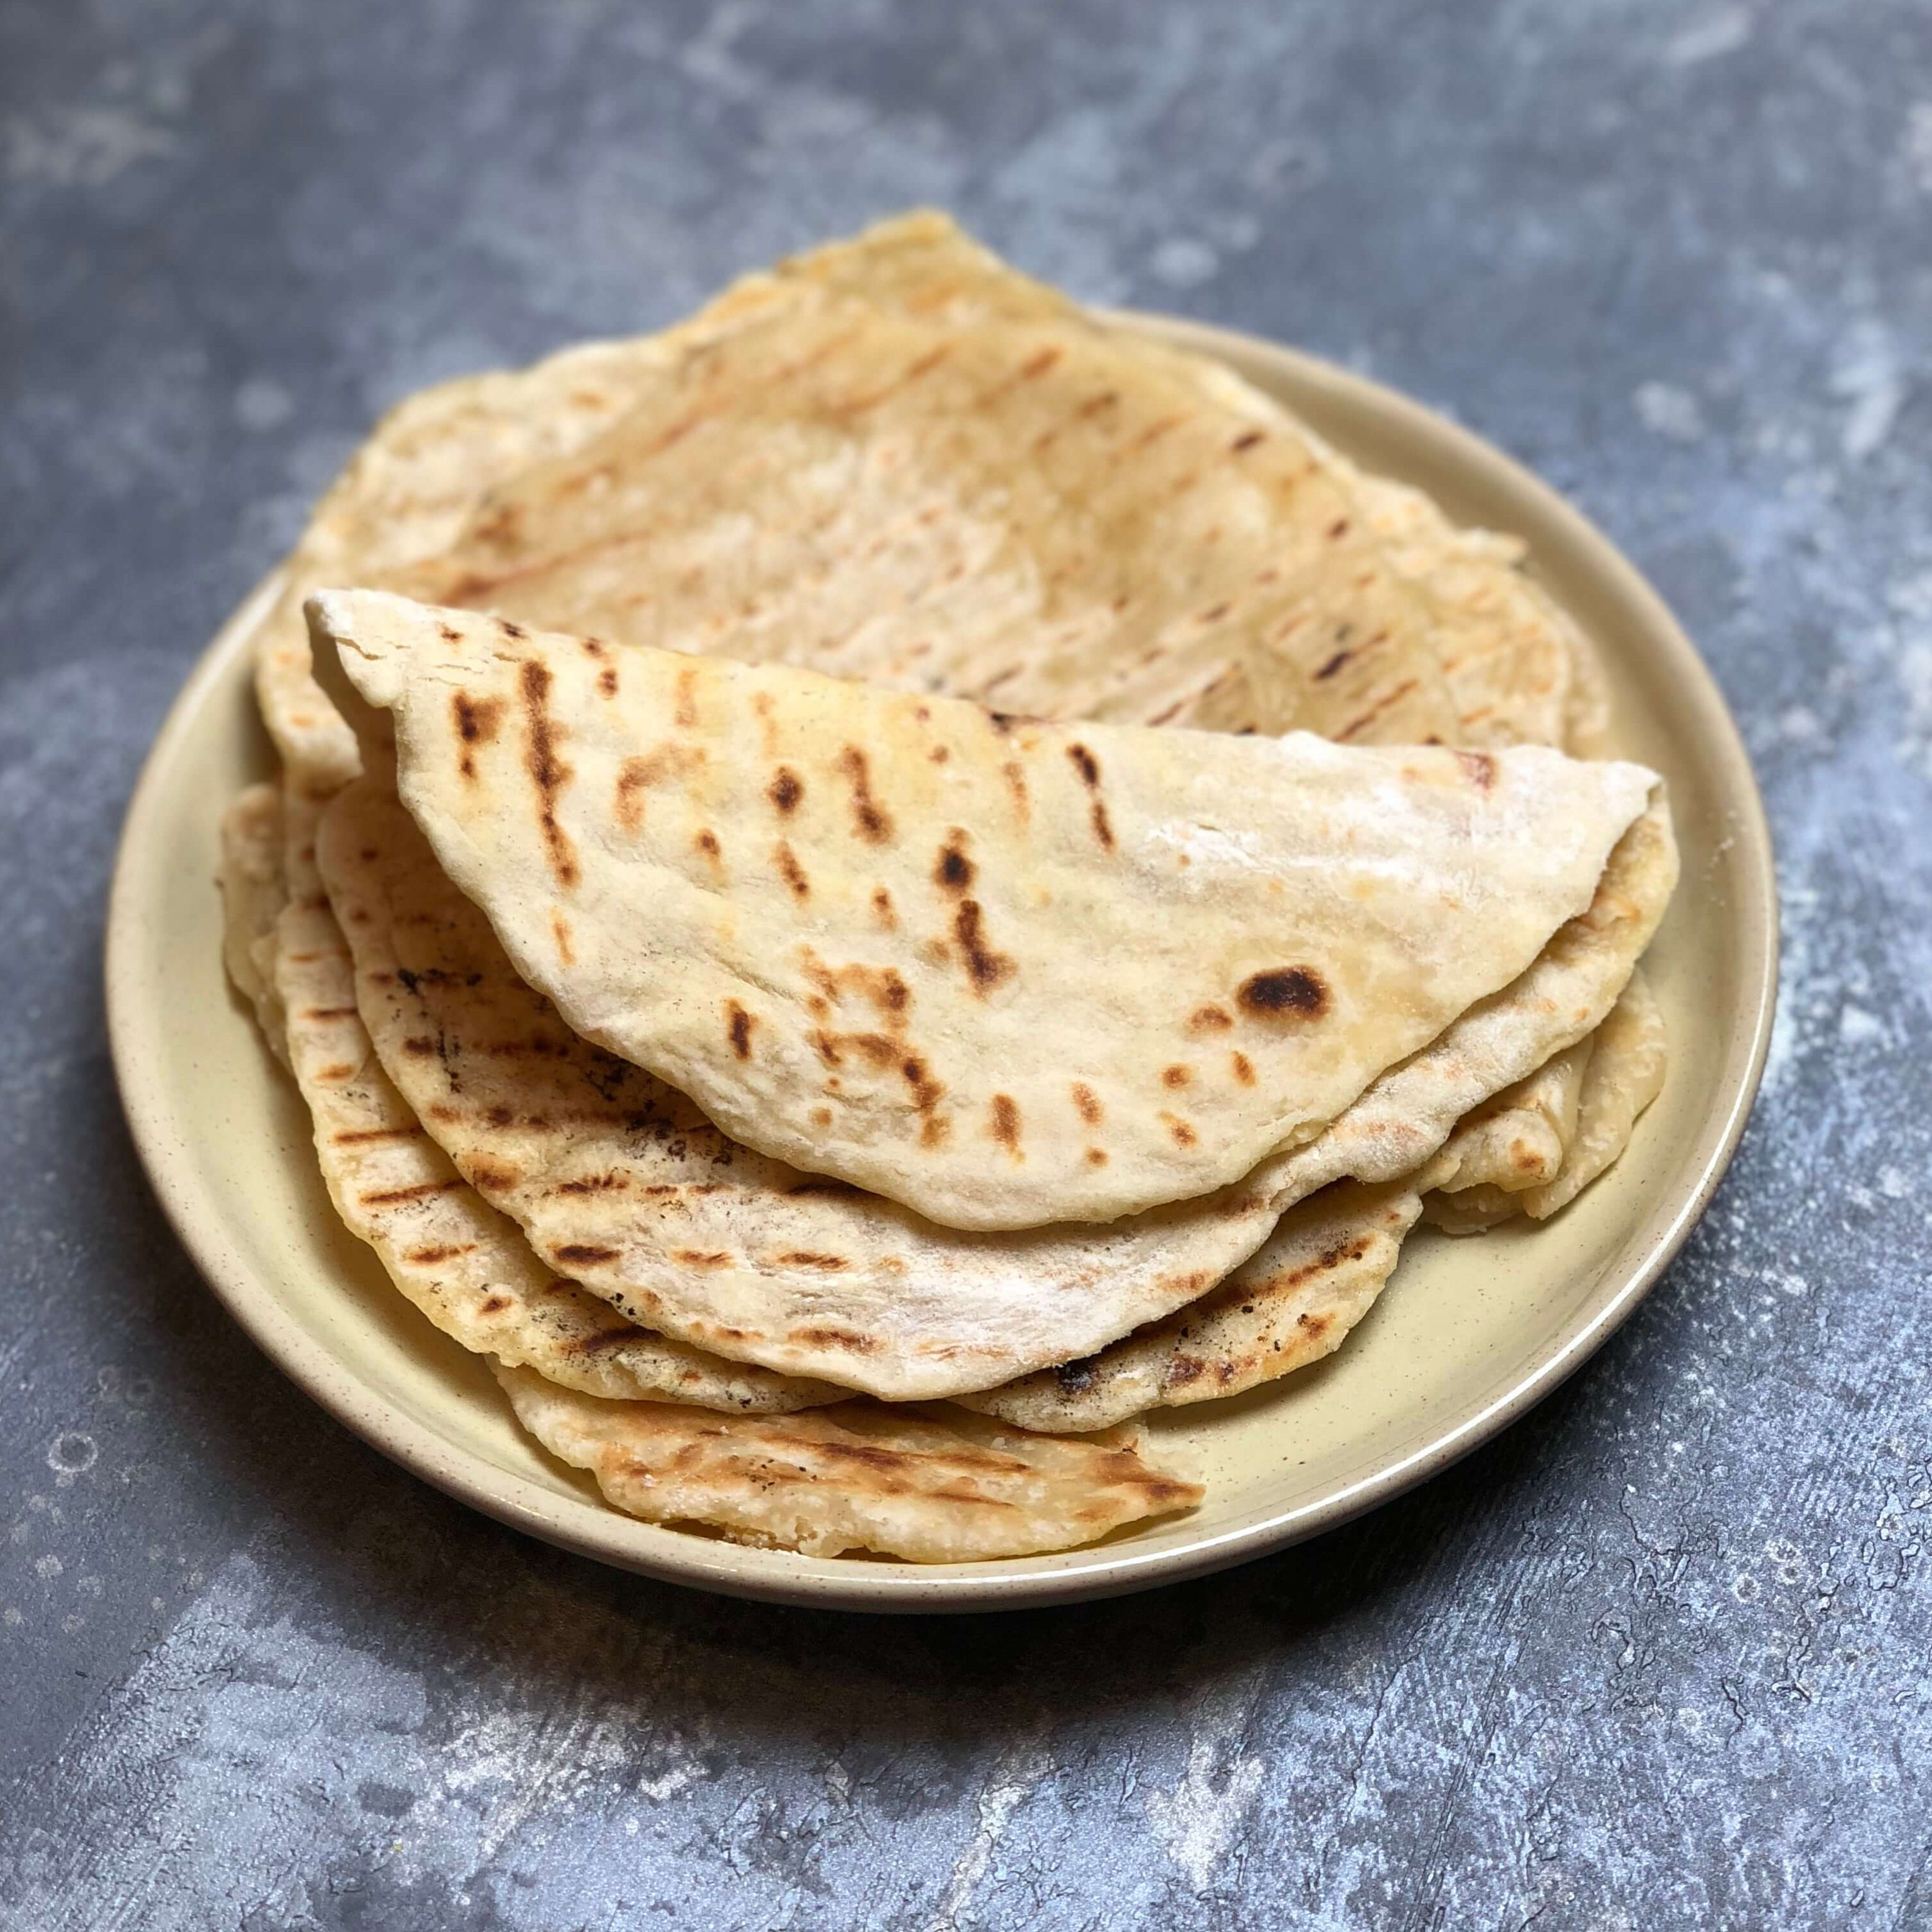 Nate's Wrapable Yeastless Flatbreads Recipe